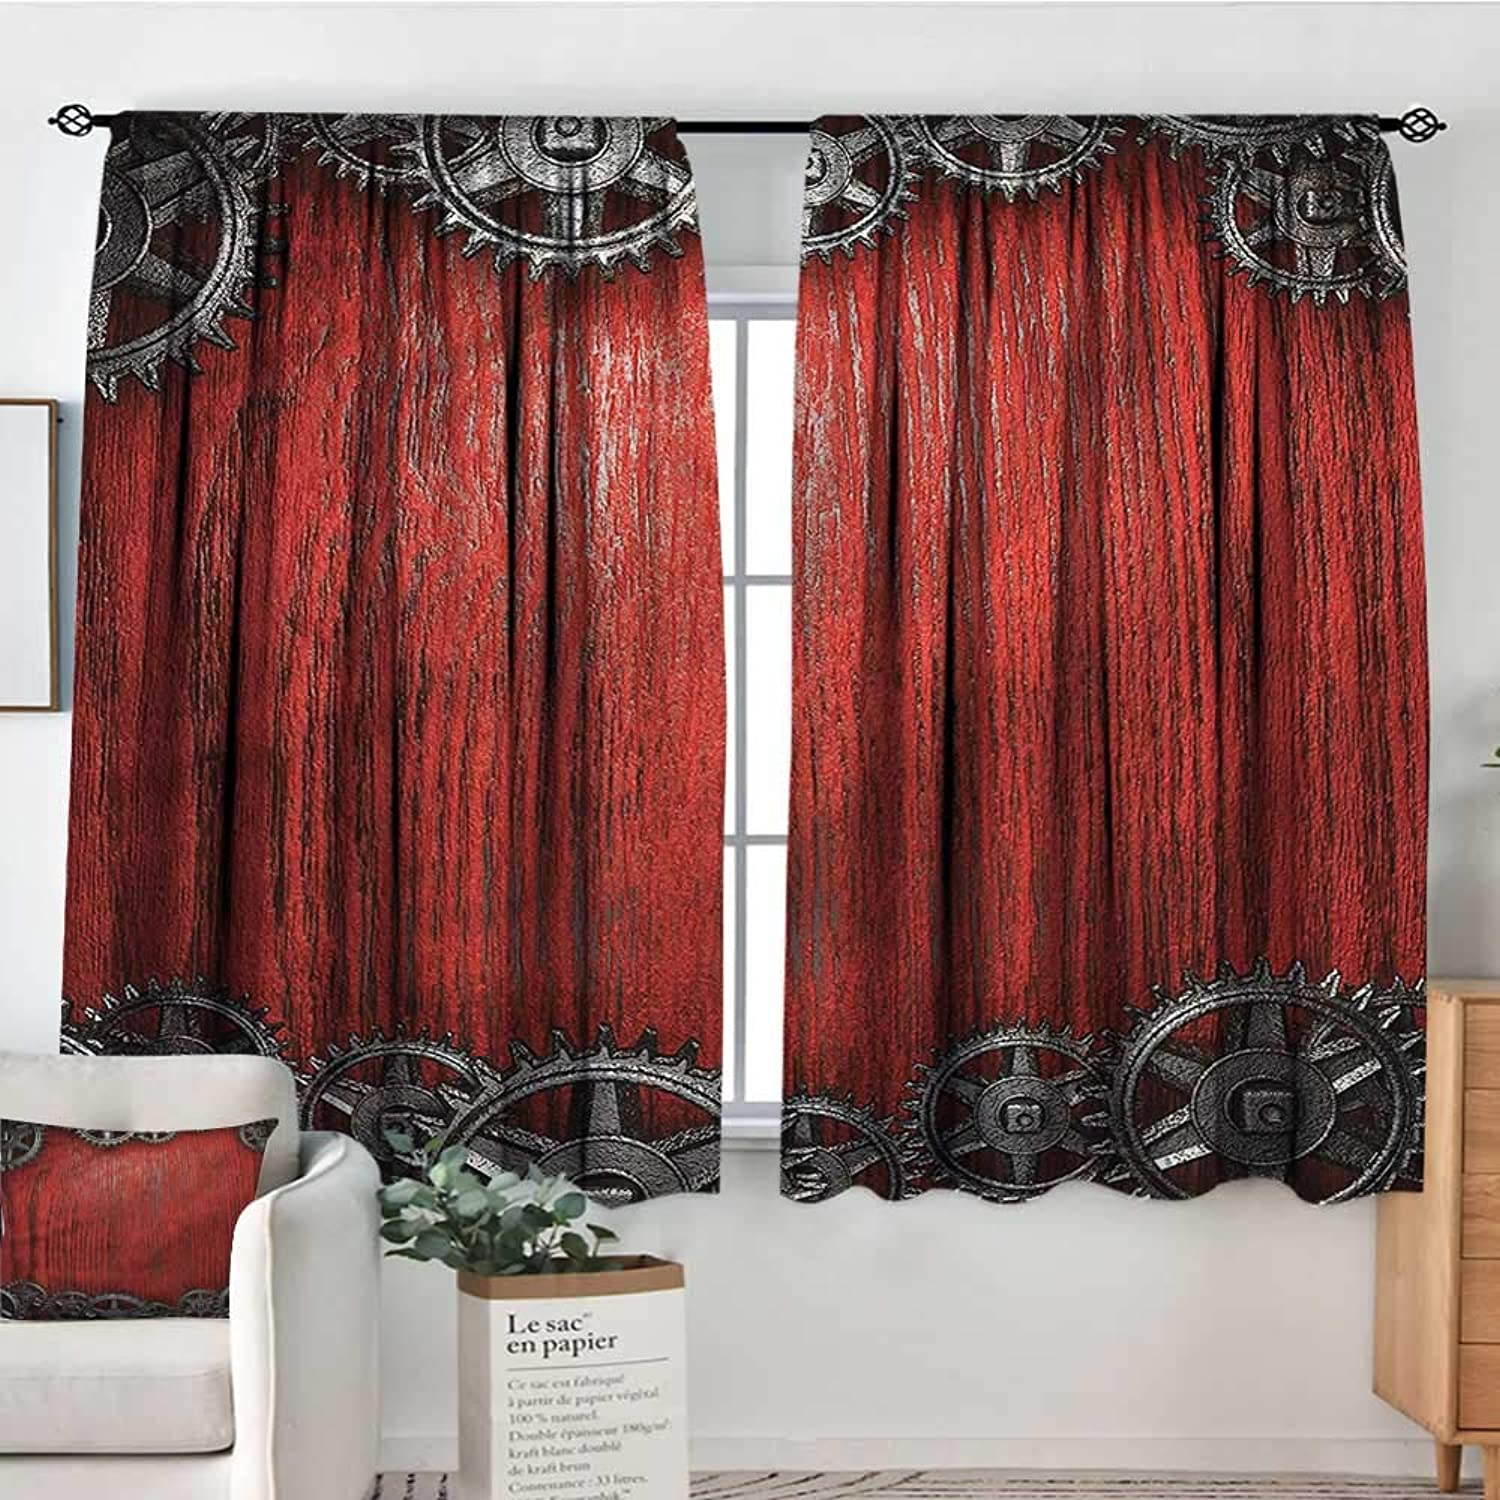 Sanring Industrial,2 Curtain Panes Gear Wheels on The Wood 42 X63  Drapes for Iving Room